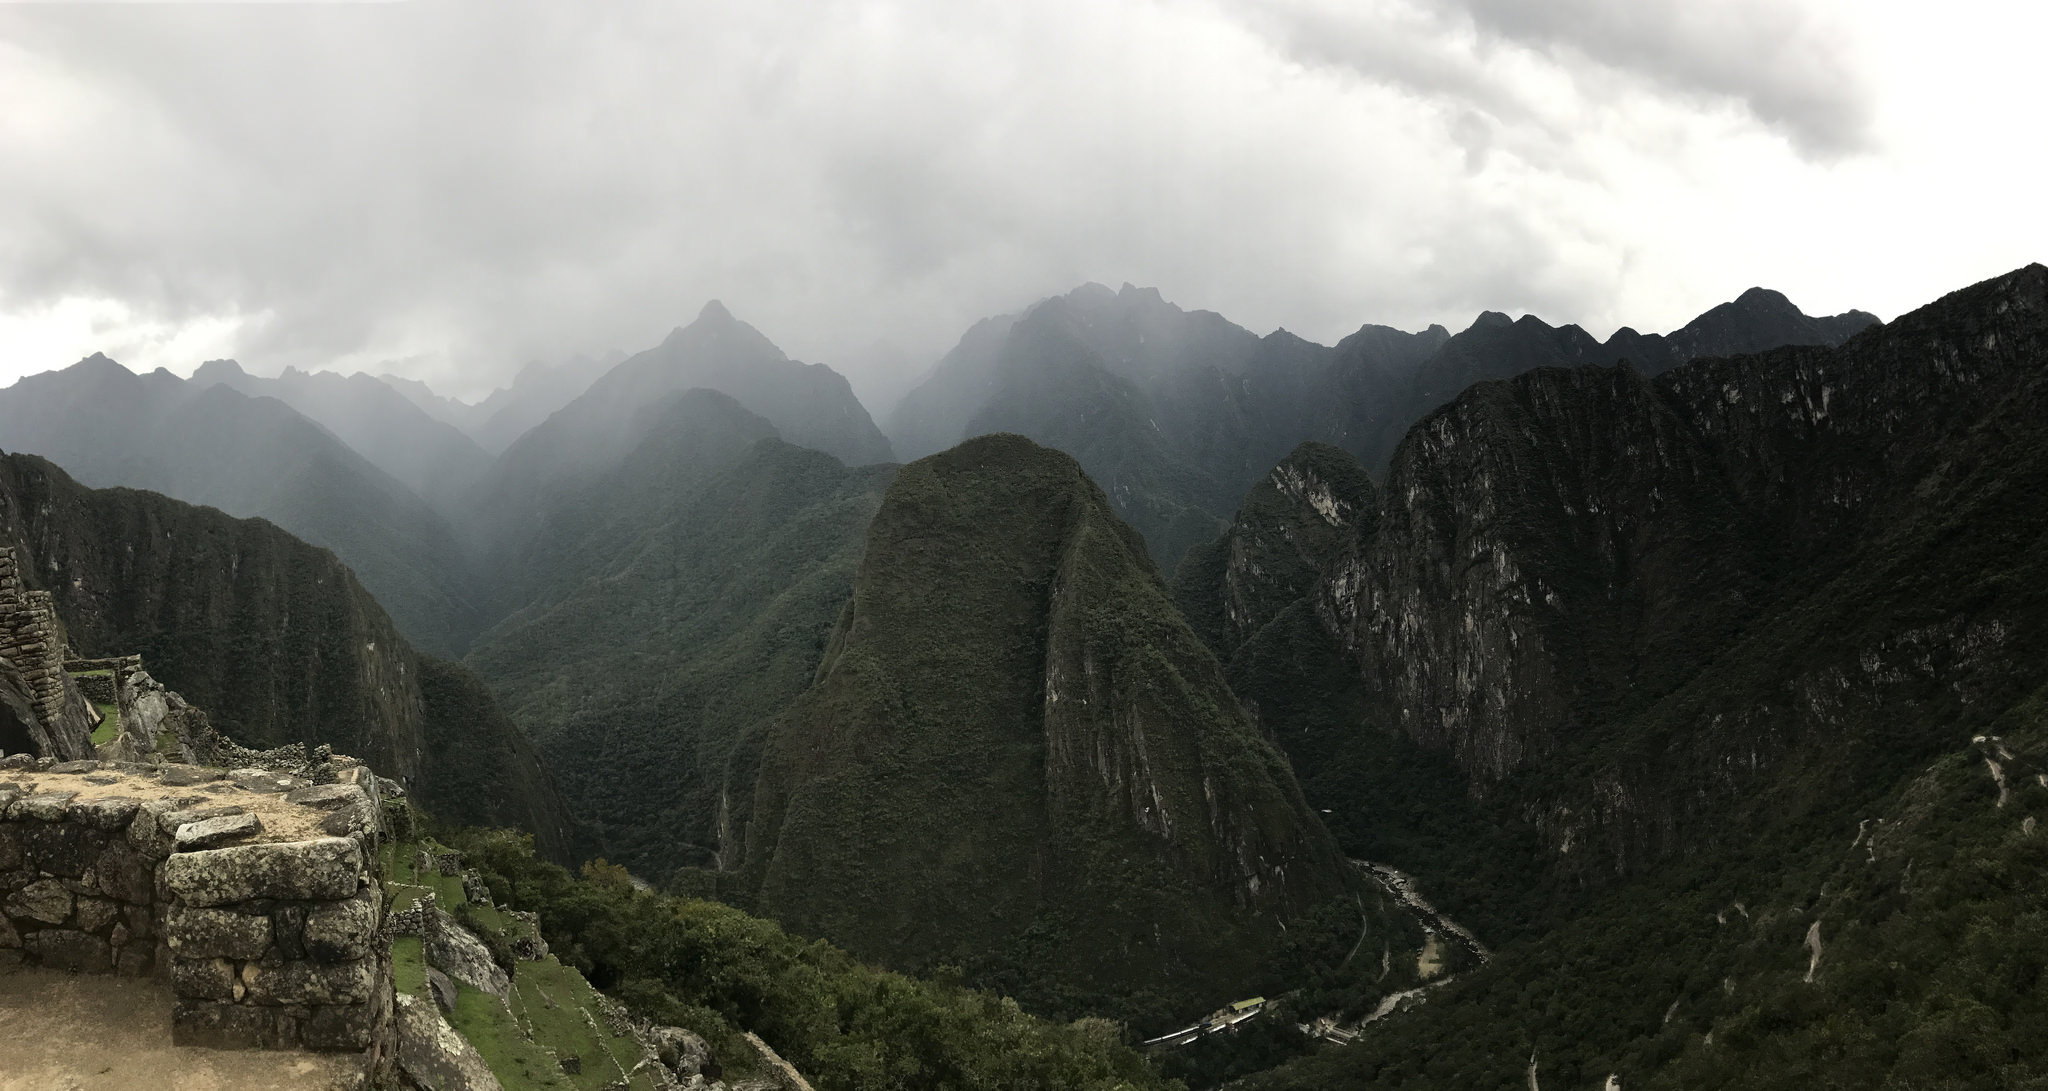 View back along the valley from Machu Picchu